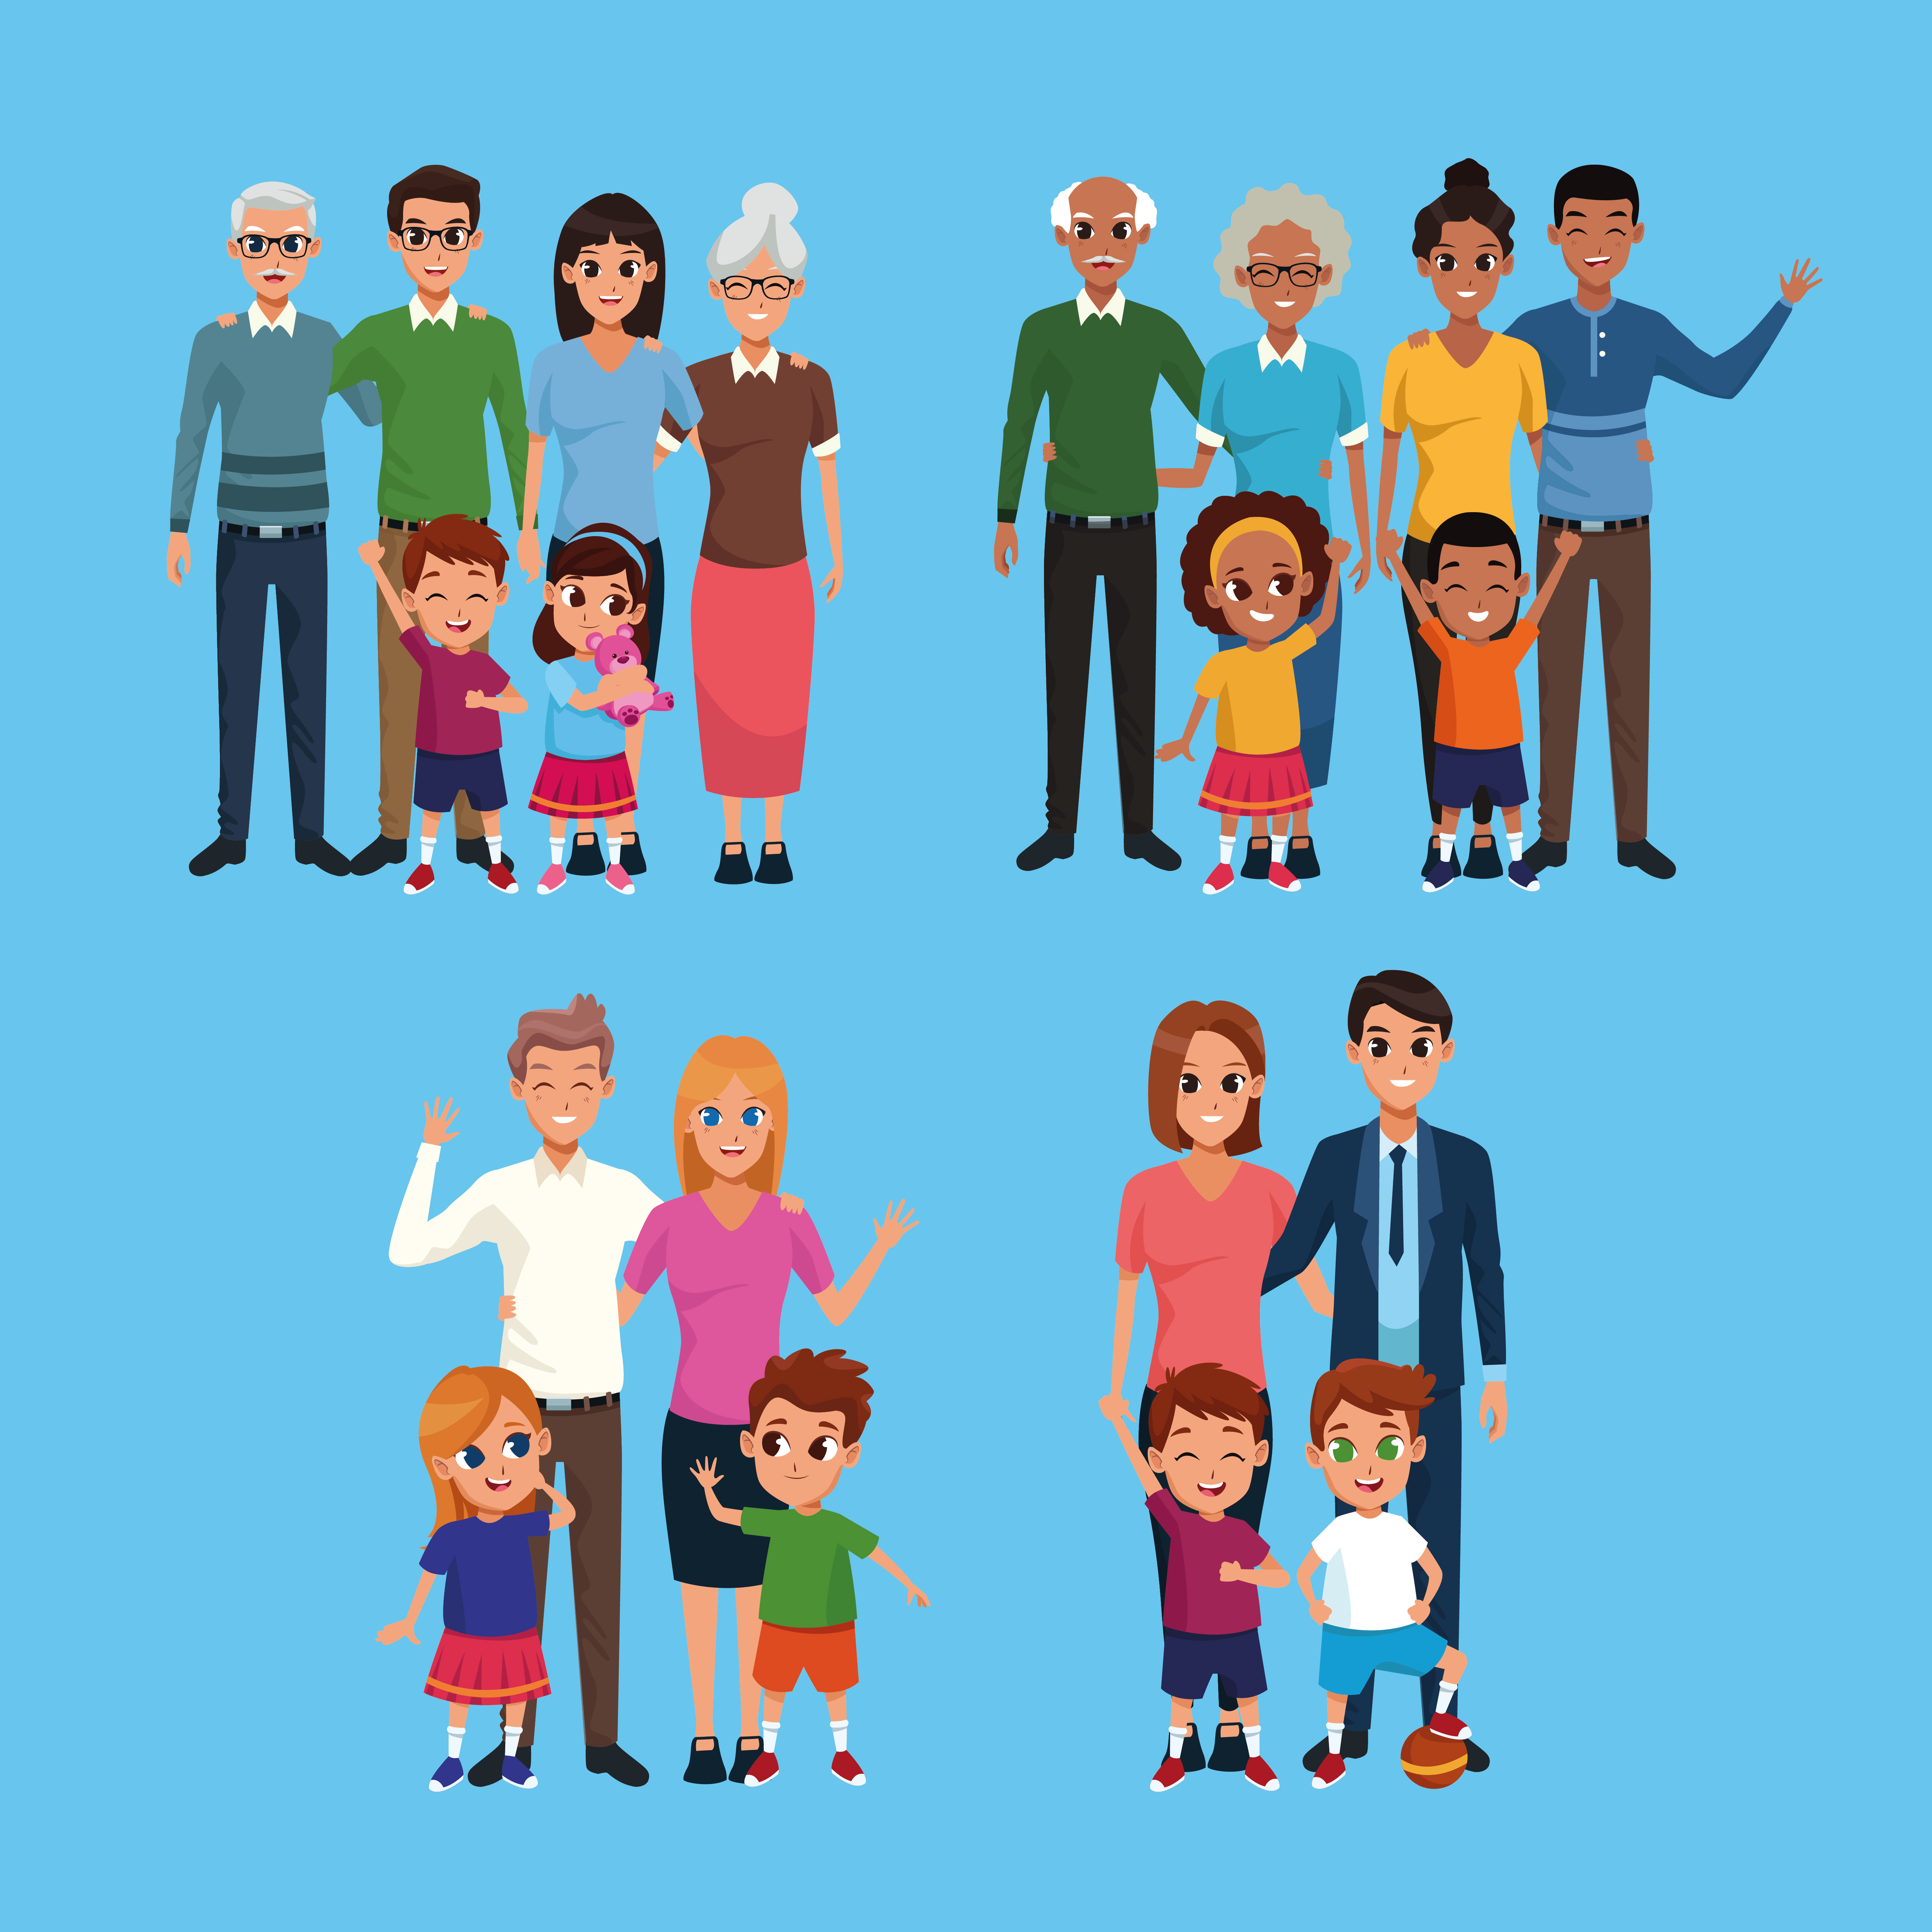 Family Set Of Cartoons Collection Download Free Vectors Clipart Graphics Vector Art The best selection of royalty free cartoon family vector art, graphics and stock illustrations. vecteezy